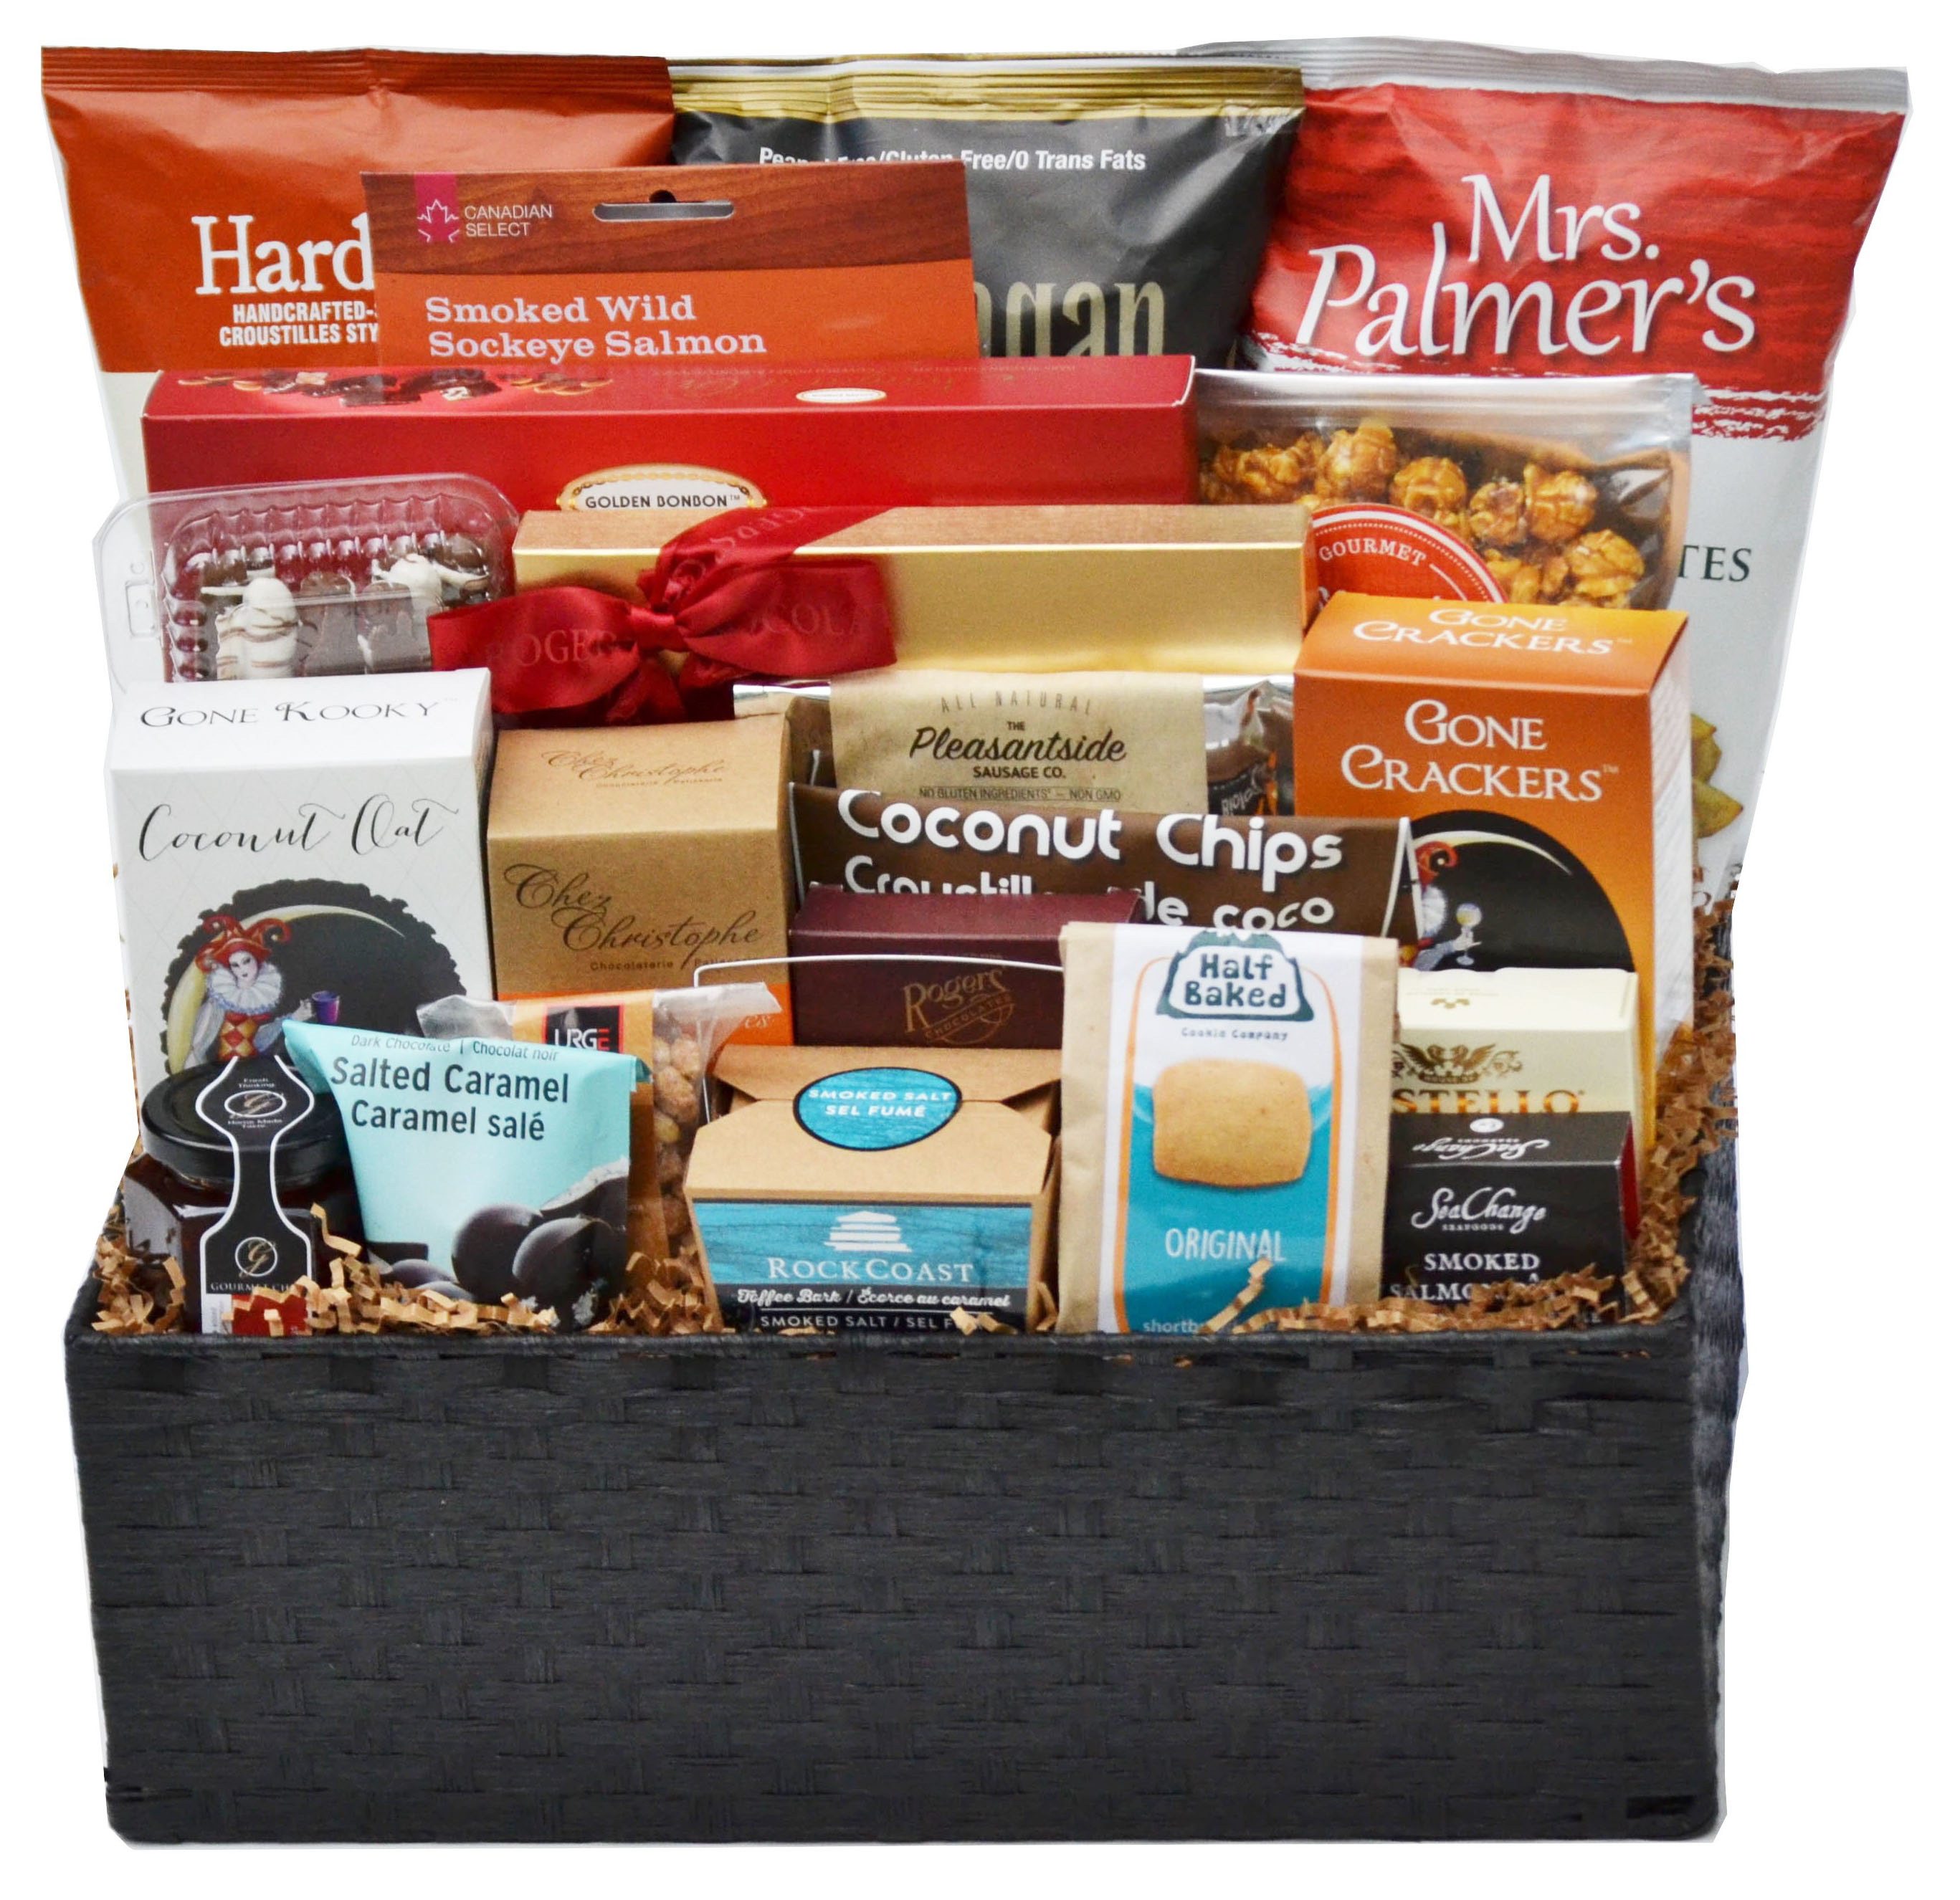 Vegan Gift Baskets For Christmas - We offer best Christmas gifts for her and him, browse our wide range of unusual Christmas gift ideas and order online. costco gifts christmas gag gifts for adults xmas gift for her. There are many practical gifts that are not expensive, so if you aim for gifts bridesmaid cheap, practicality is something to.